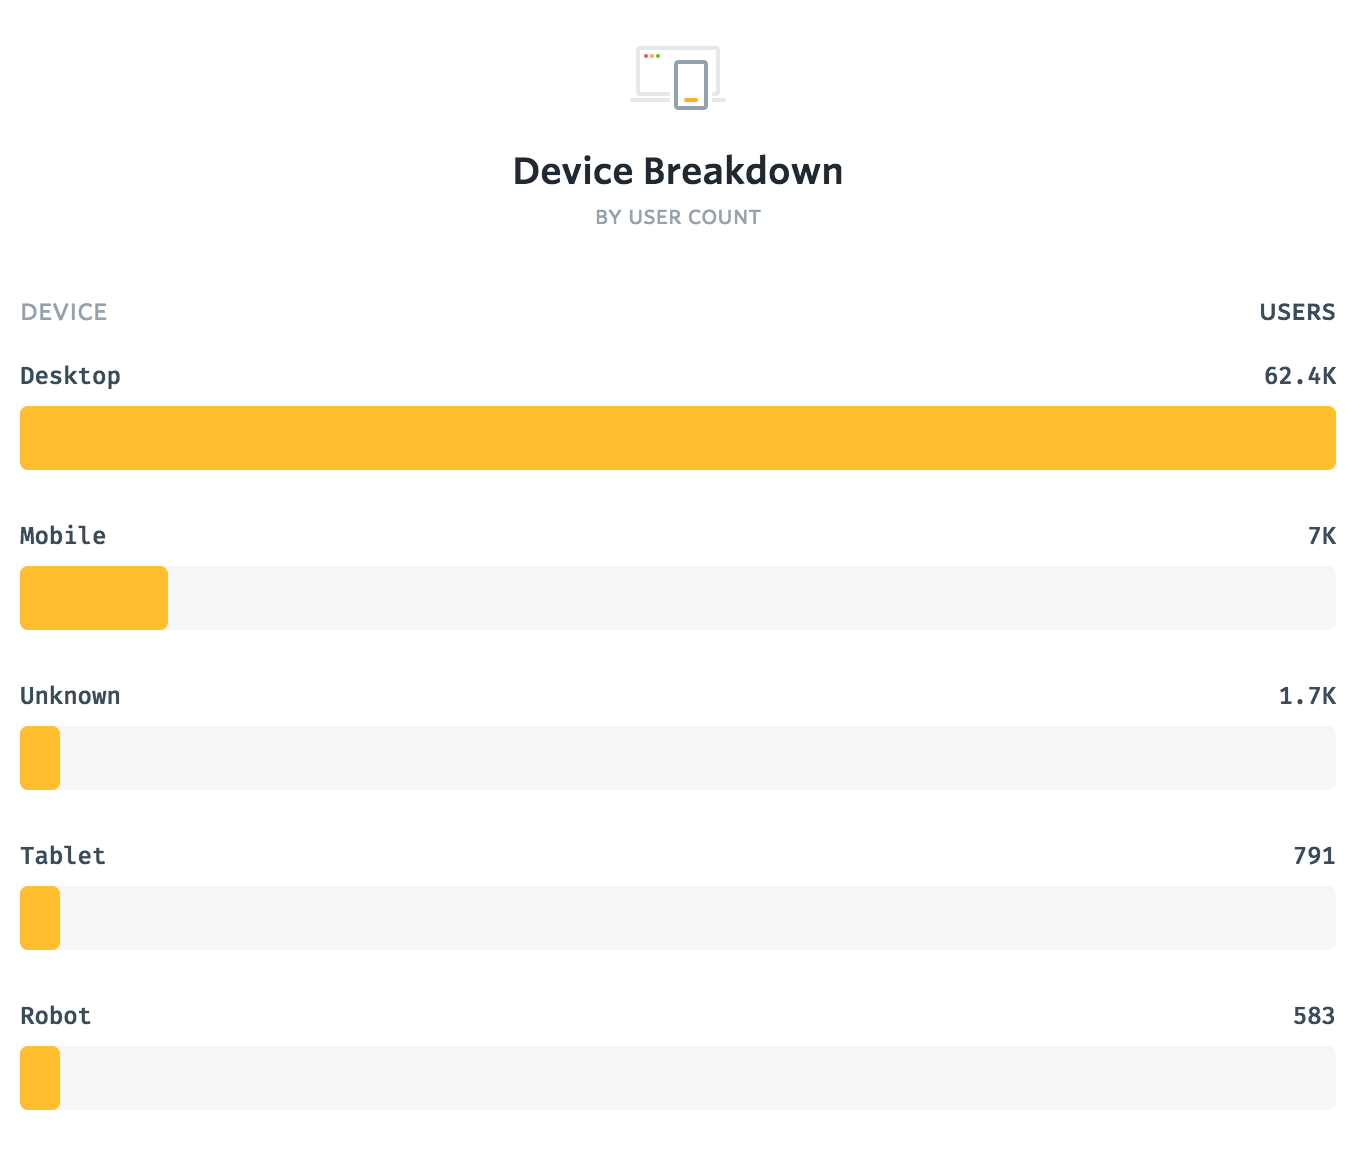 direct_1517832058400-device_breakdown.png